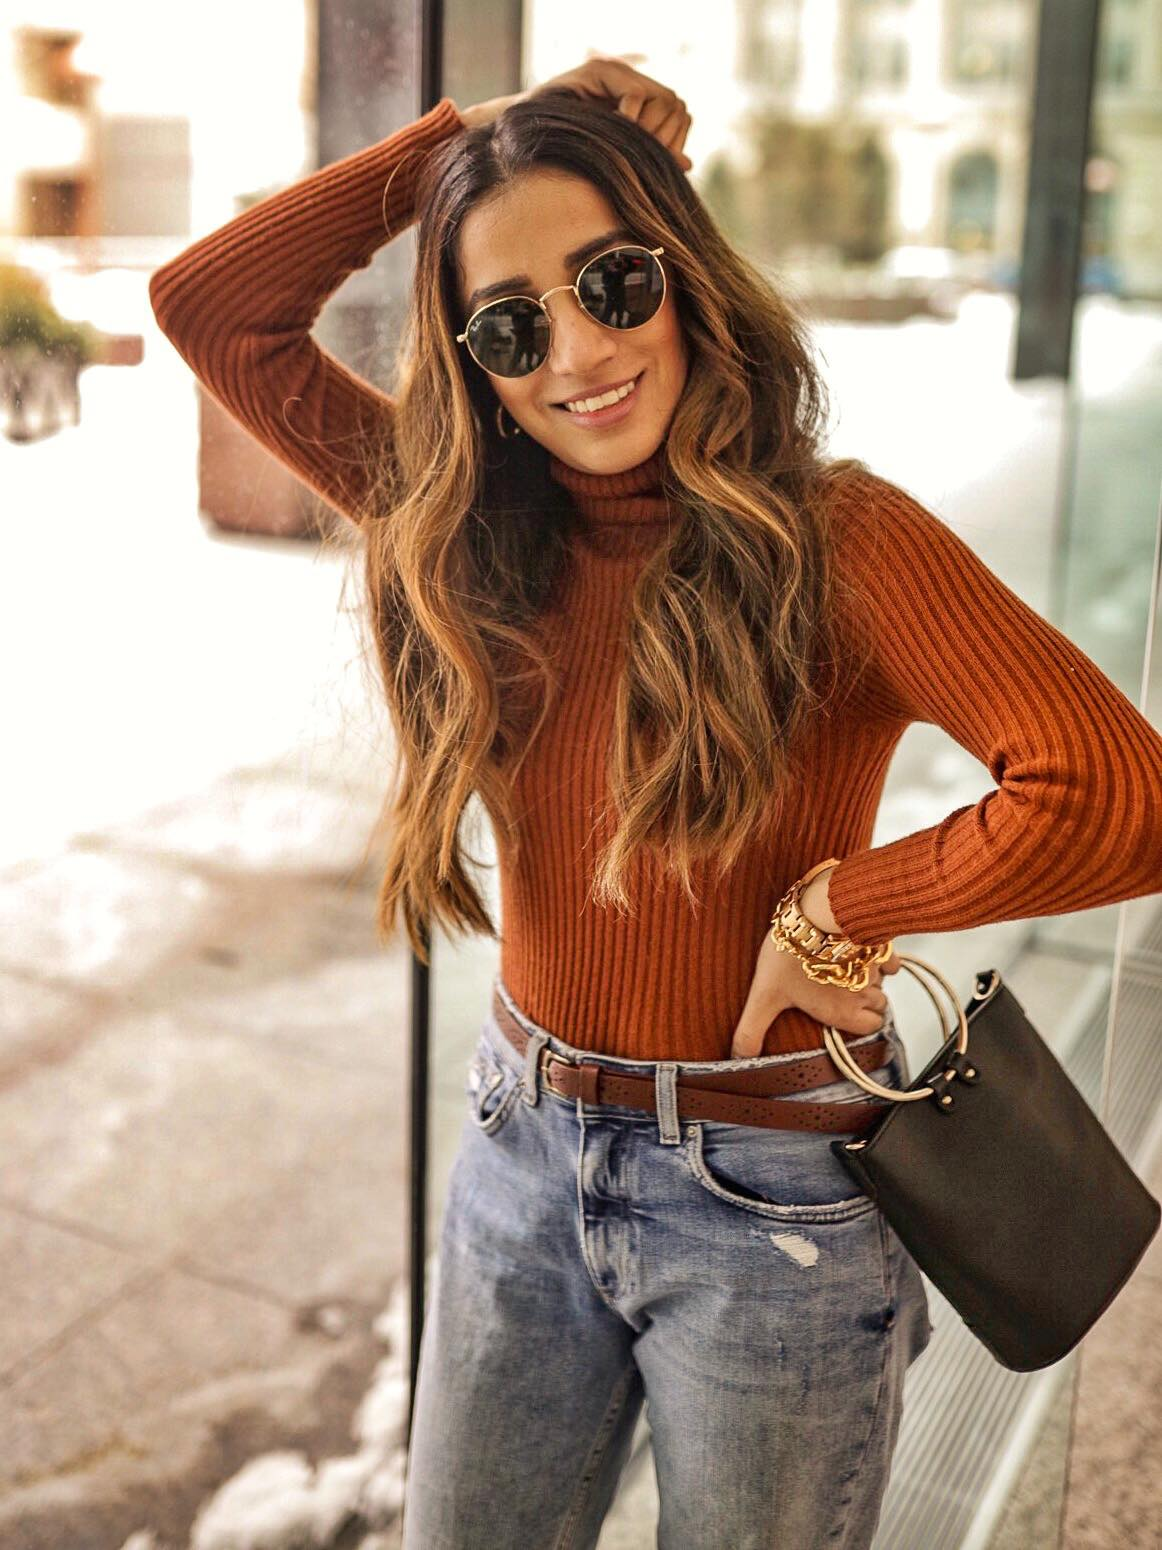 Street style boyfriend jeans Toronto fashion week ootd hm jeans asos boots faiza inam sincerely humble 3 Camel Hues for the Look